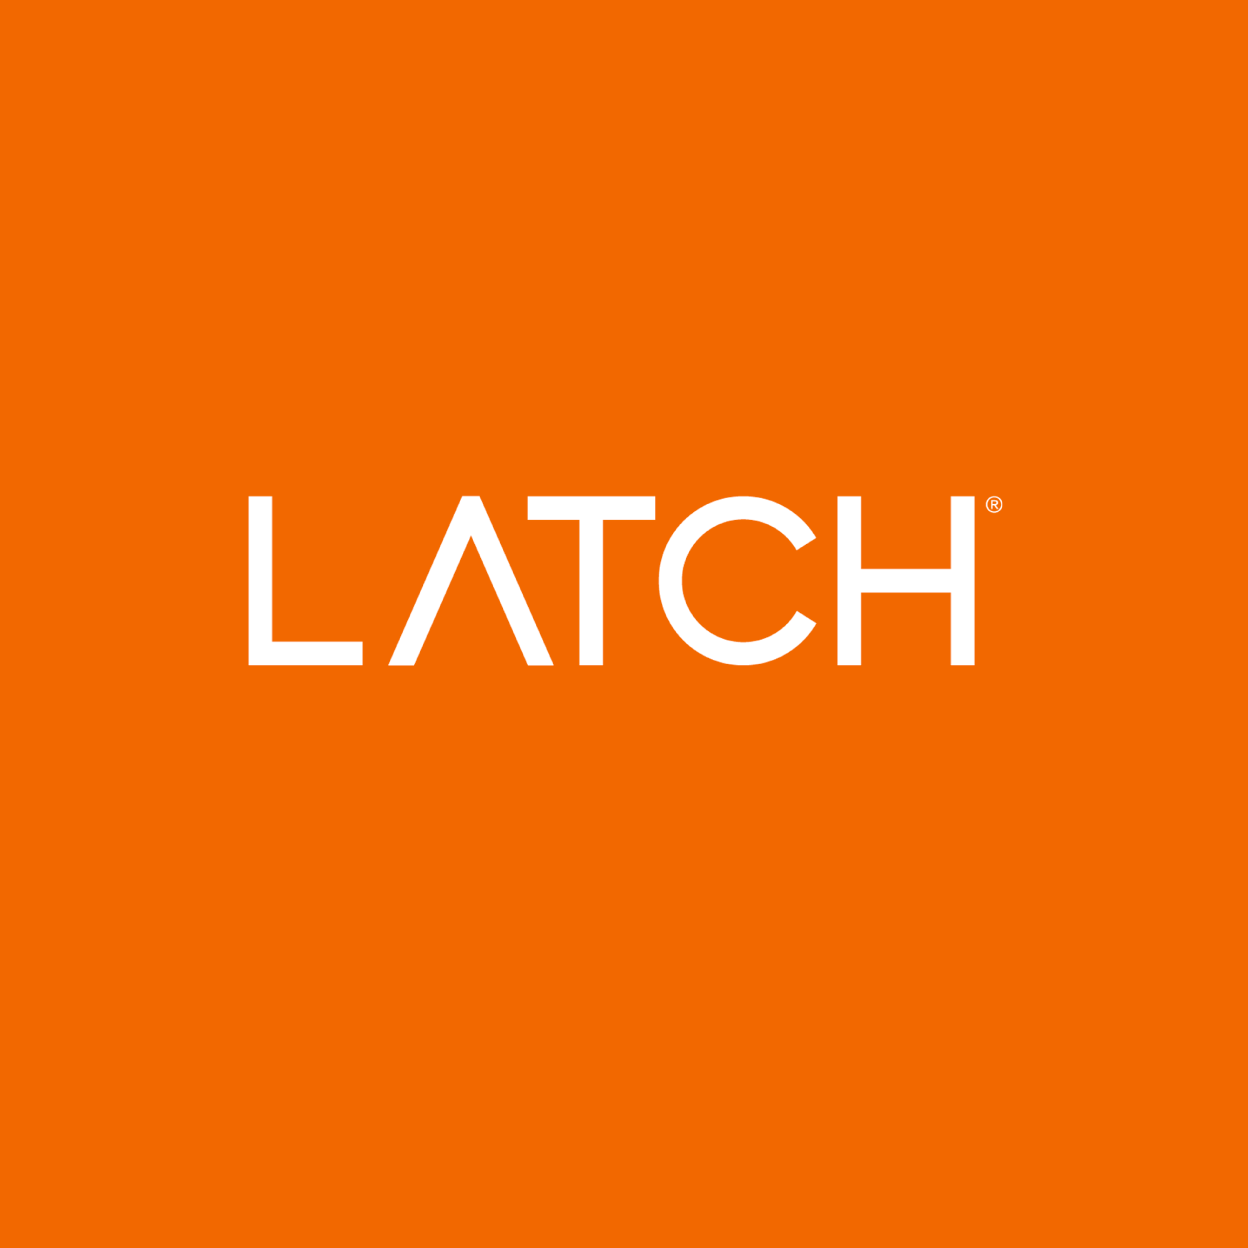 Latch is designed for urban areas and allows residents to open doors using either a magnetic key card, smartphone, or code.